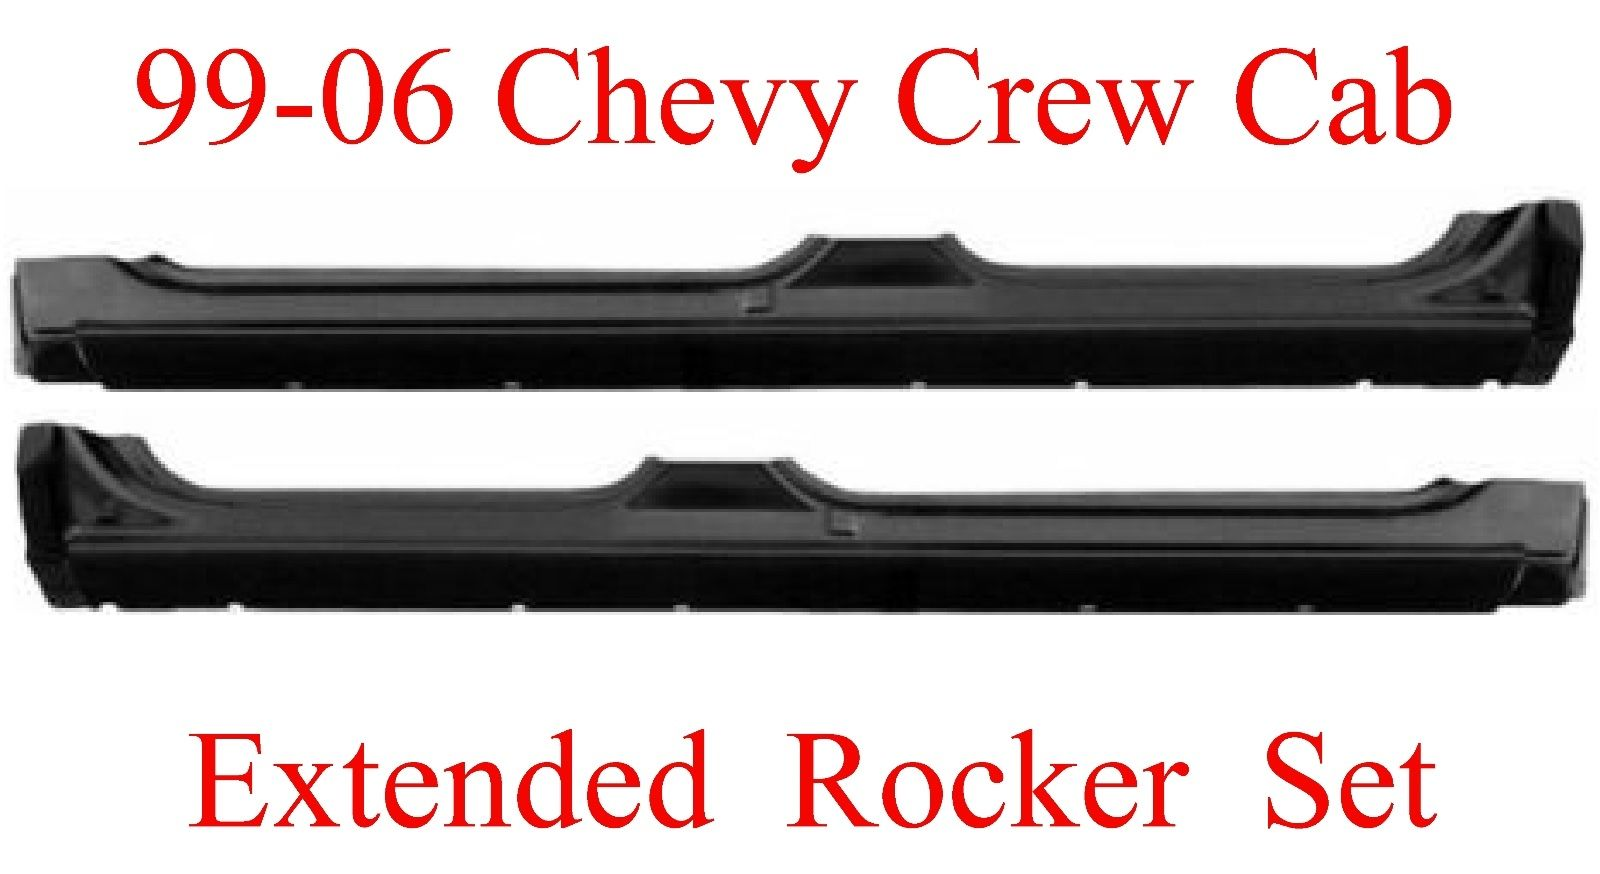 99-06 Chevy GMC Crew Cab Extended Rocker Set